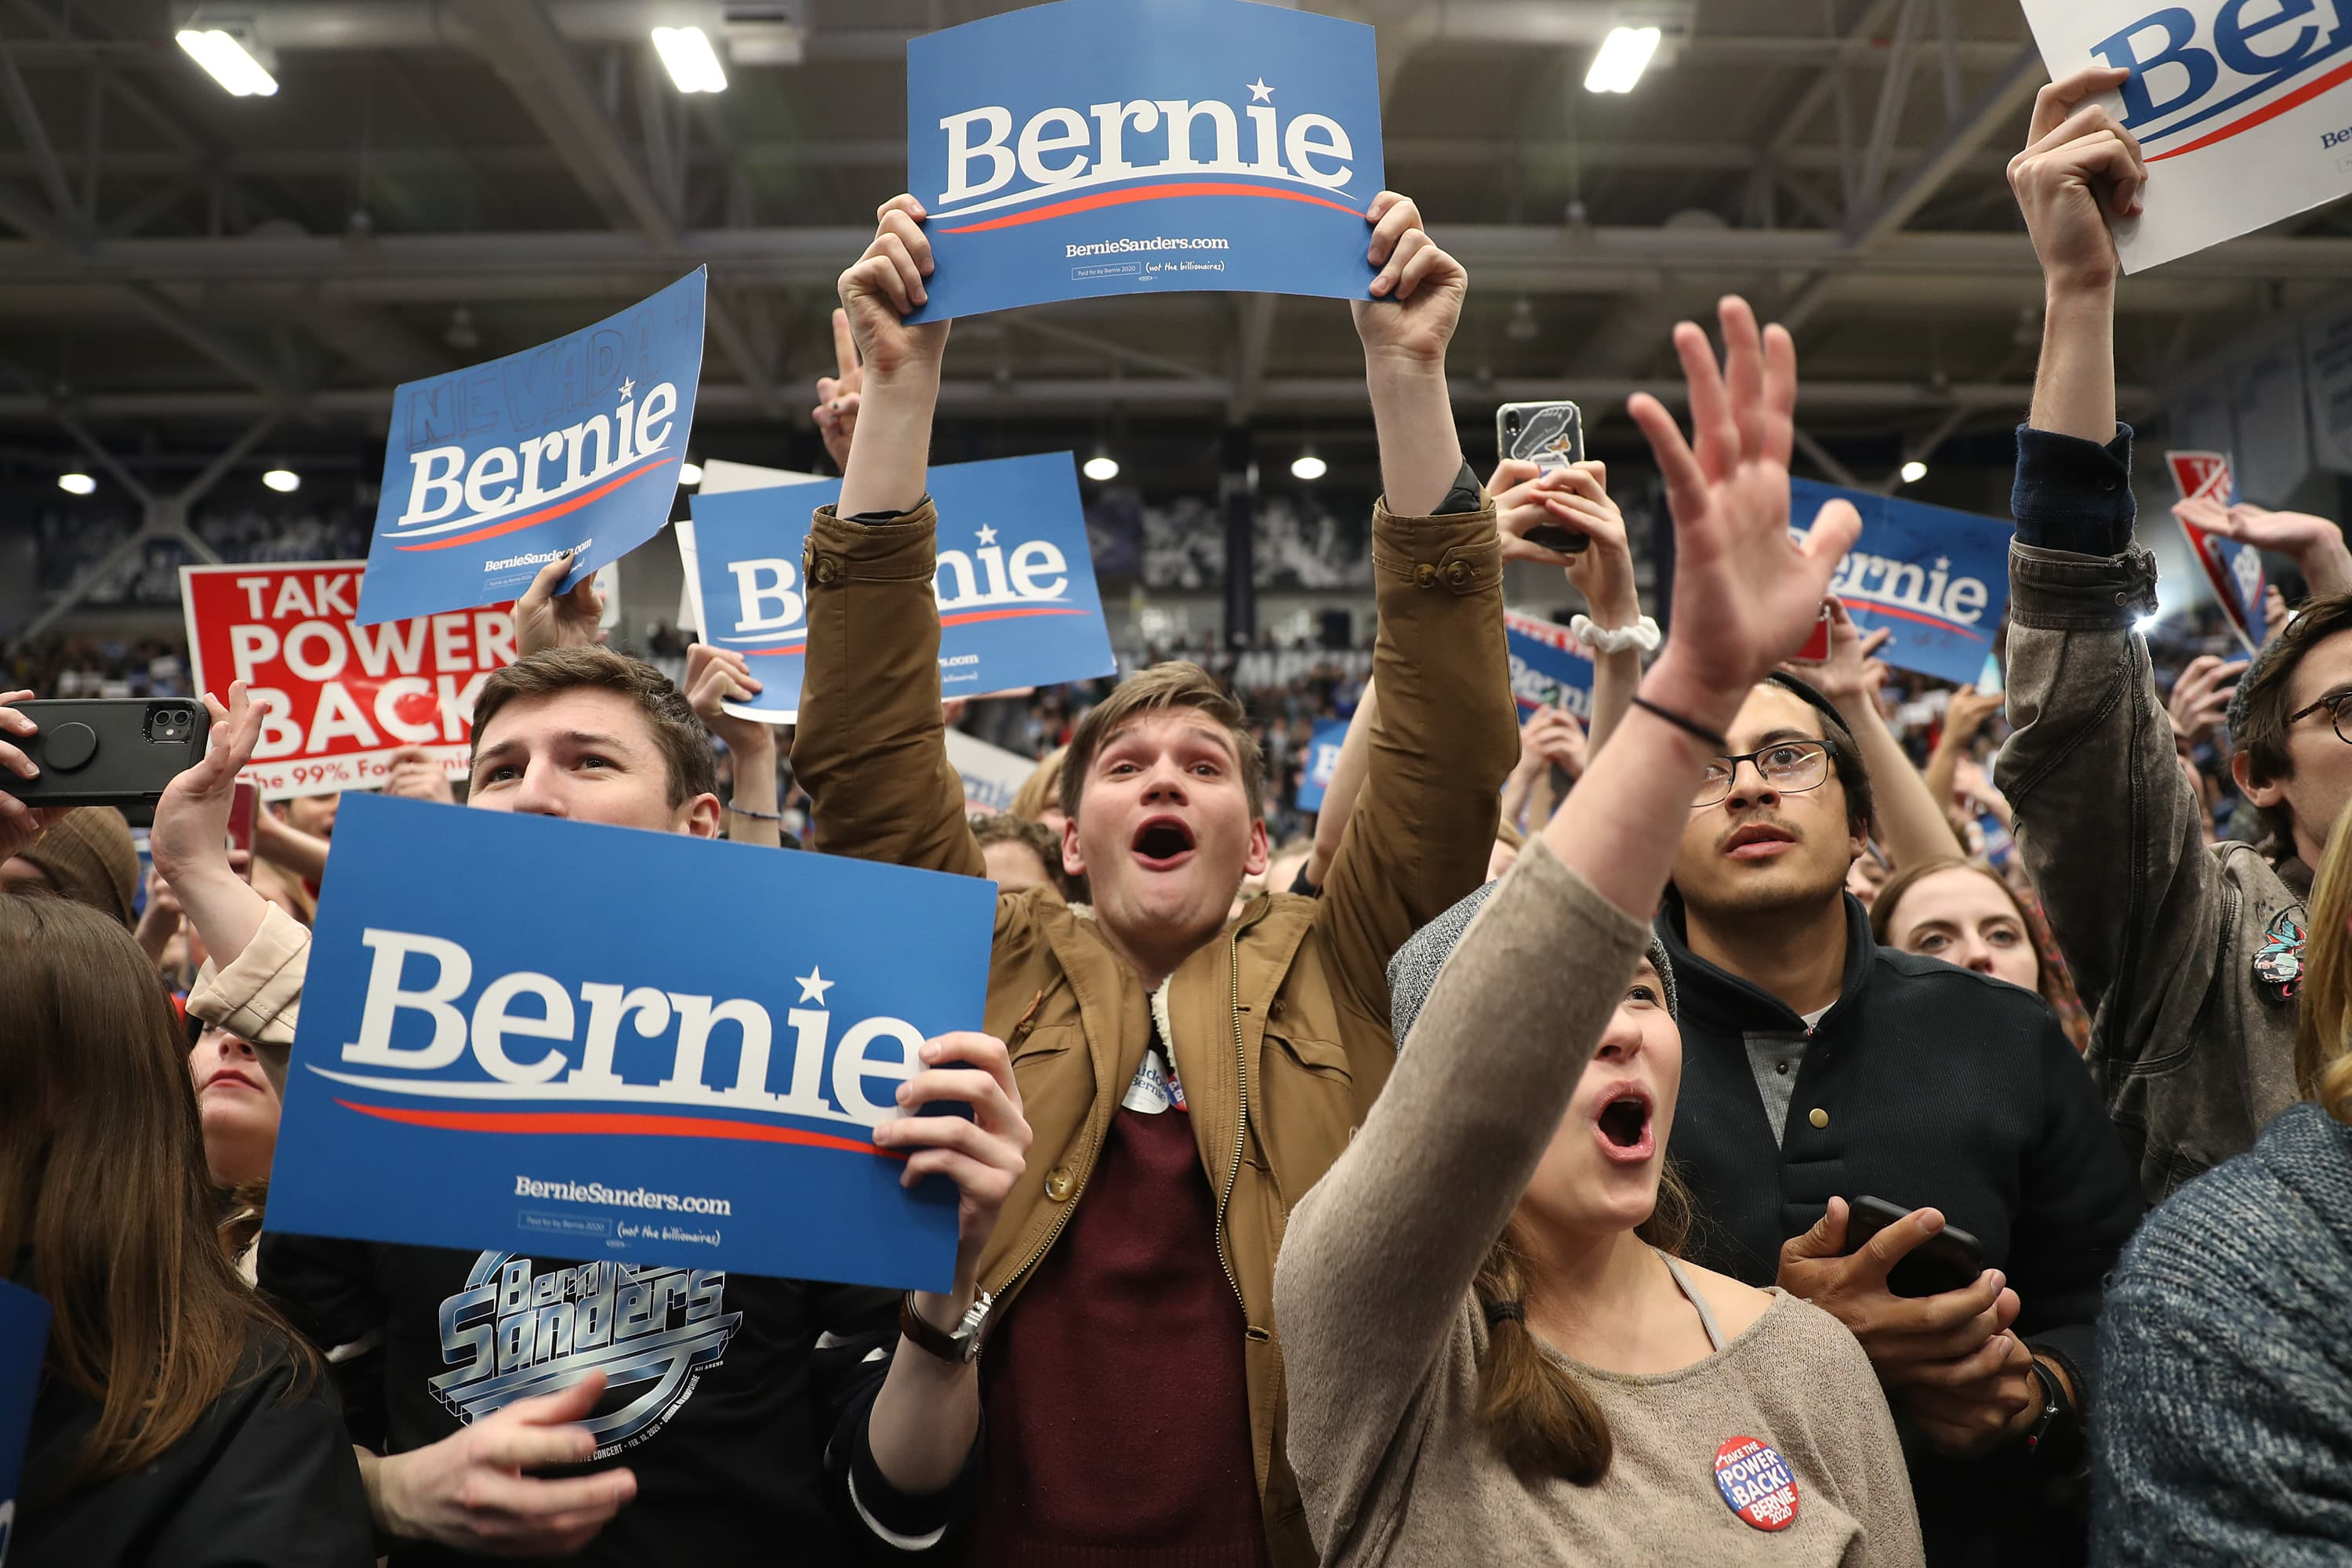 What to watch today: Dow to rise, Bernie takes New Hampshire, Powell back on the Hill